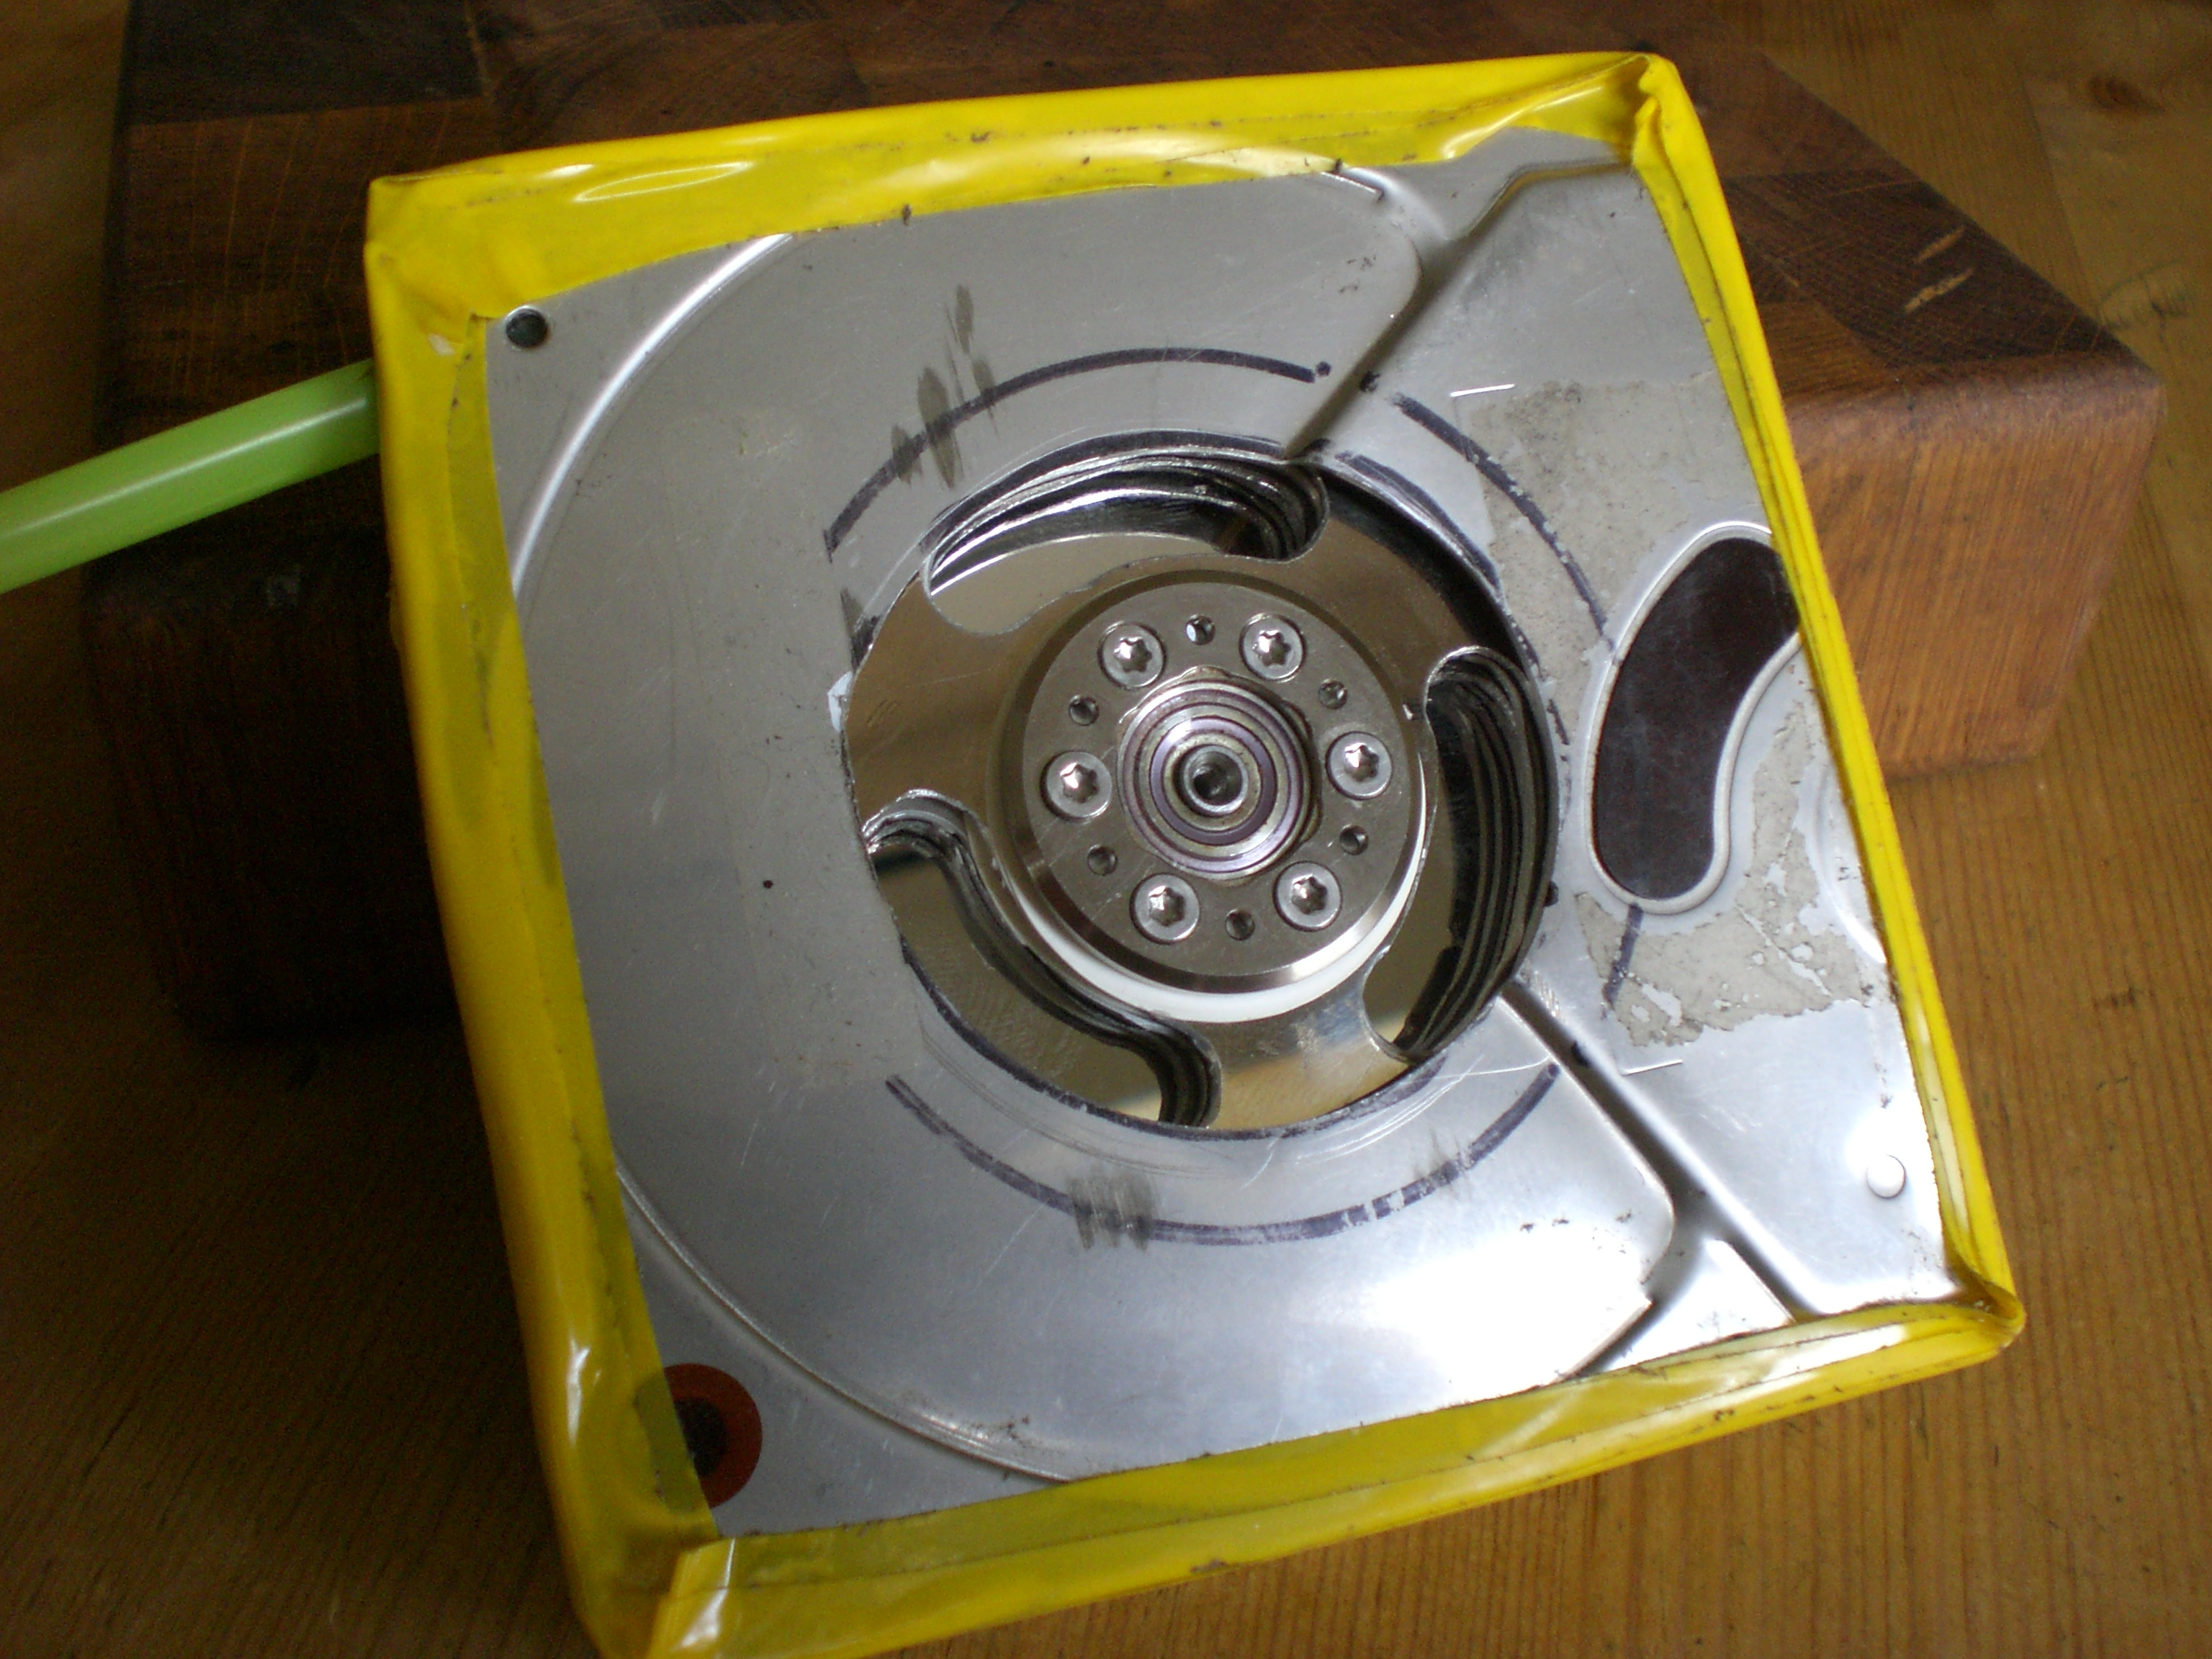 Tesla turbine from old hard drives and minimal tools